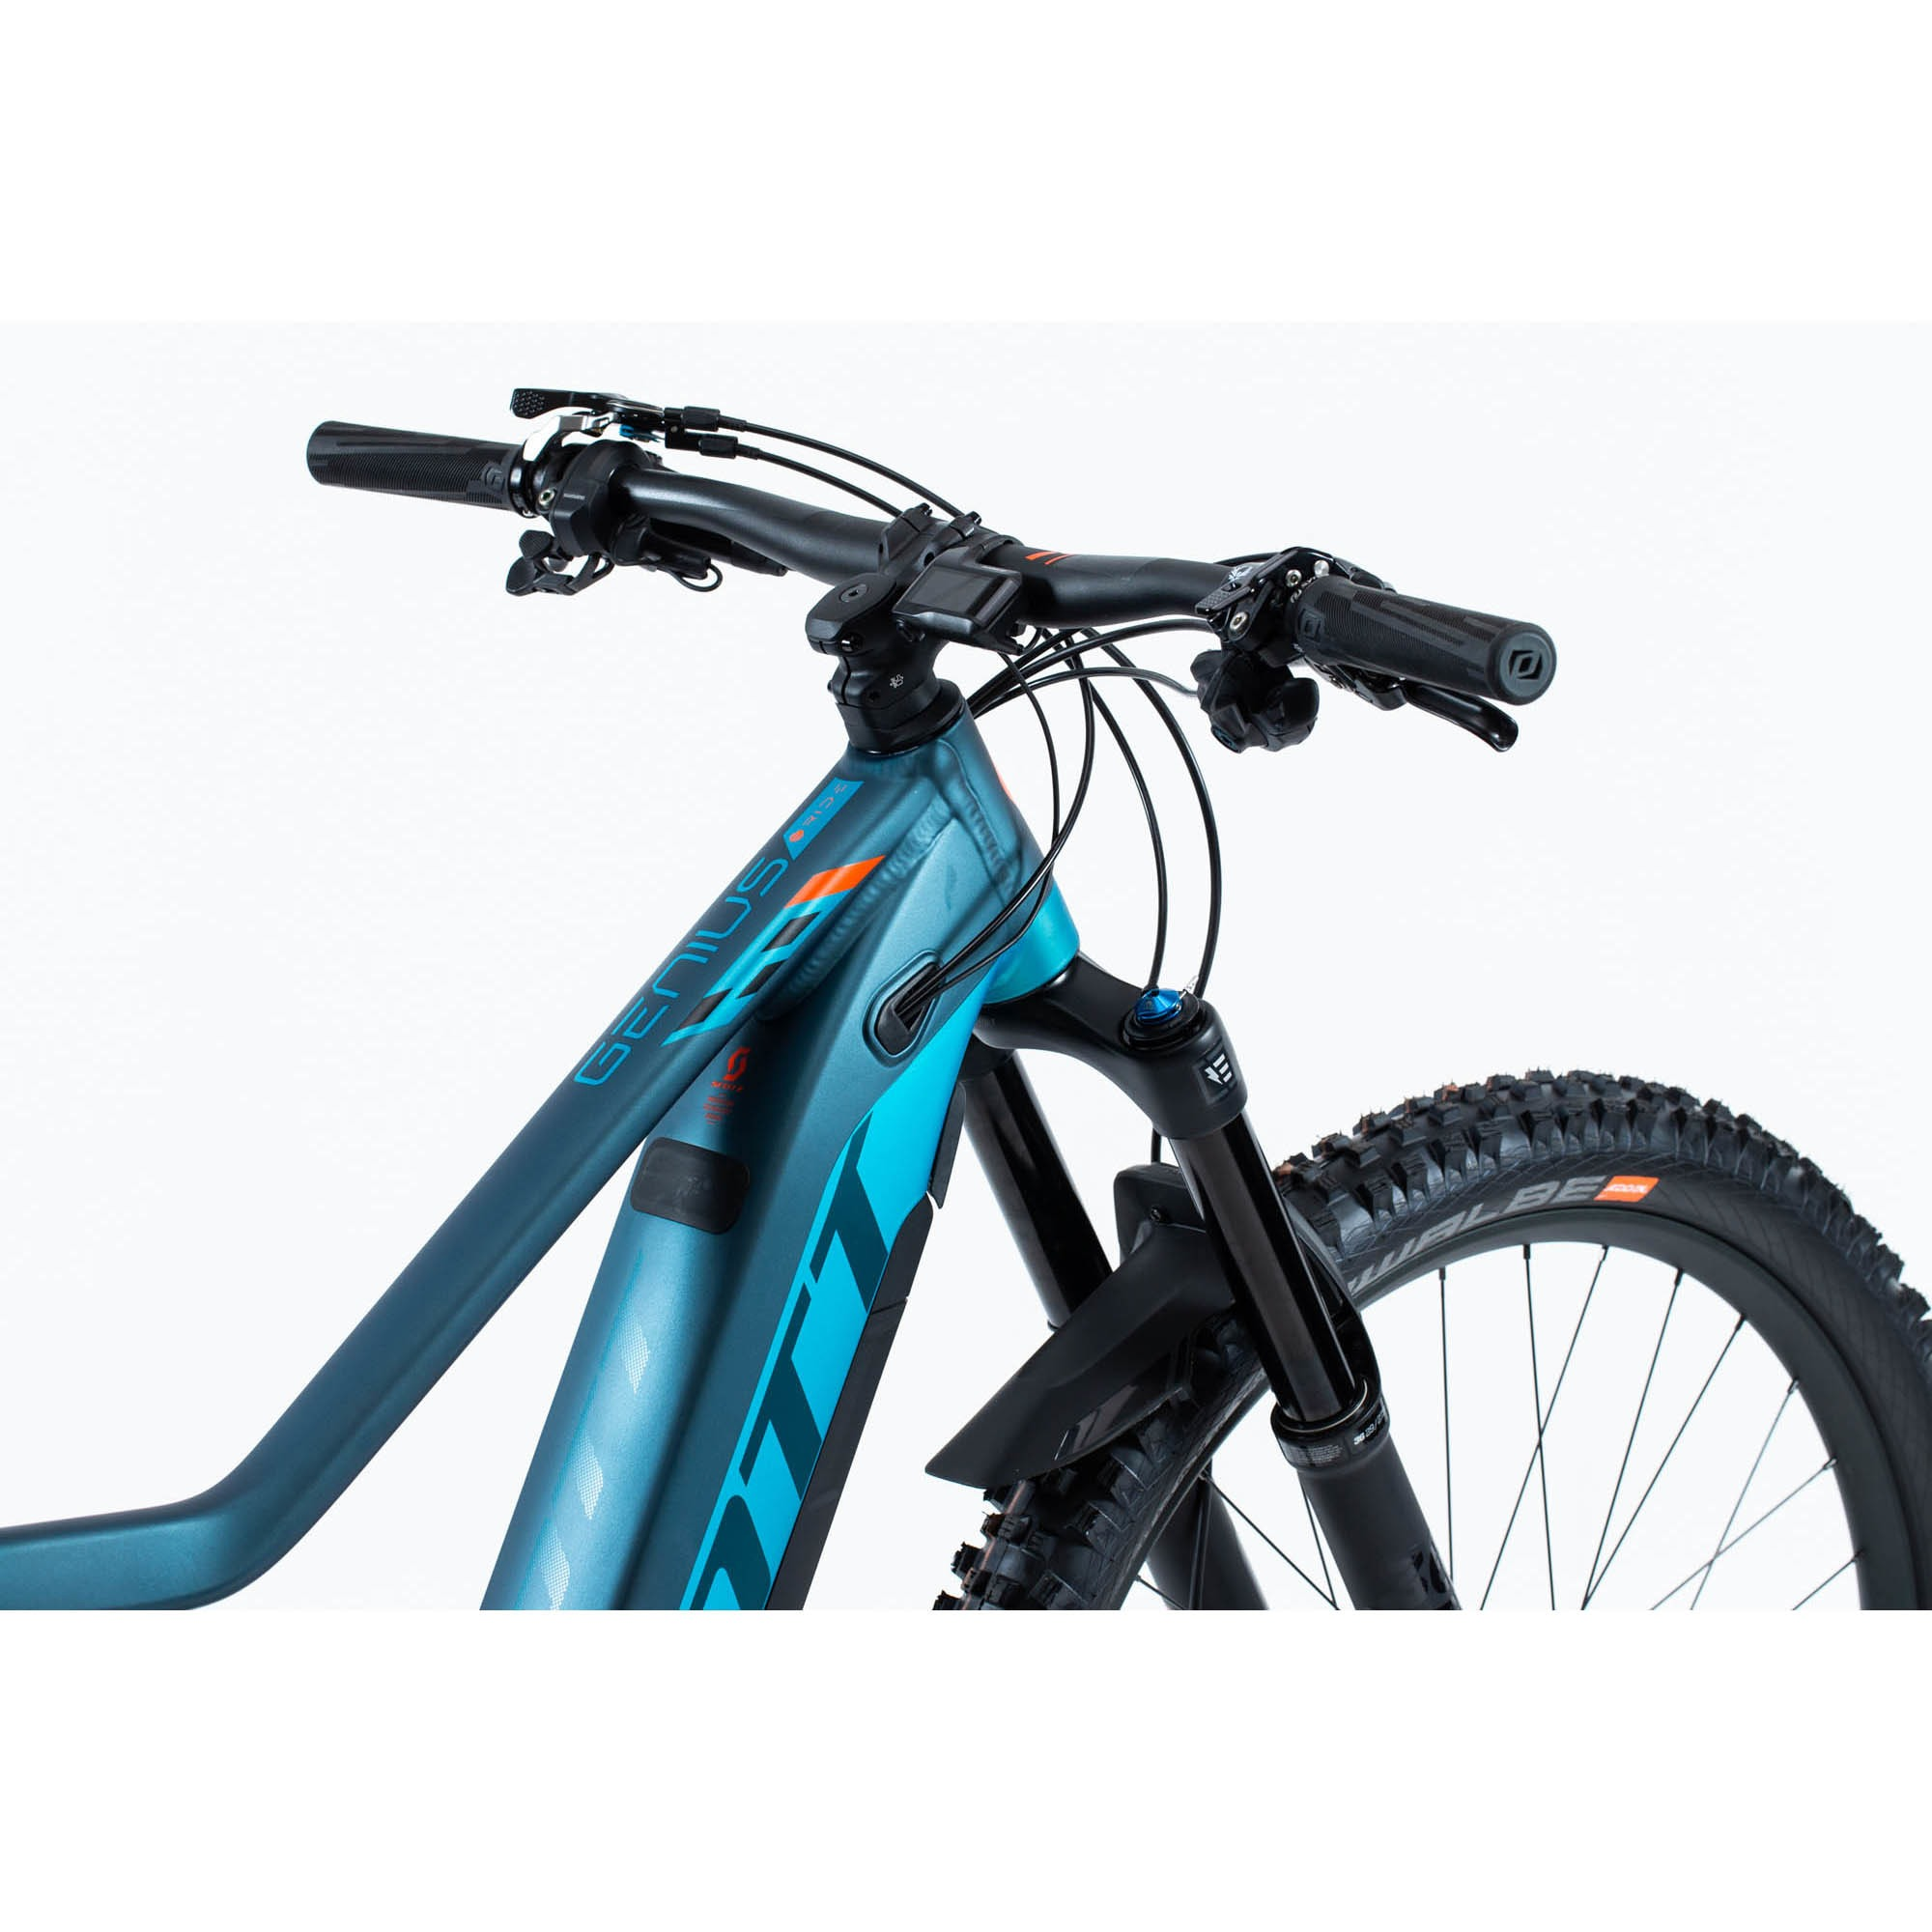 SCOTT Genius eRide 920 Bike